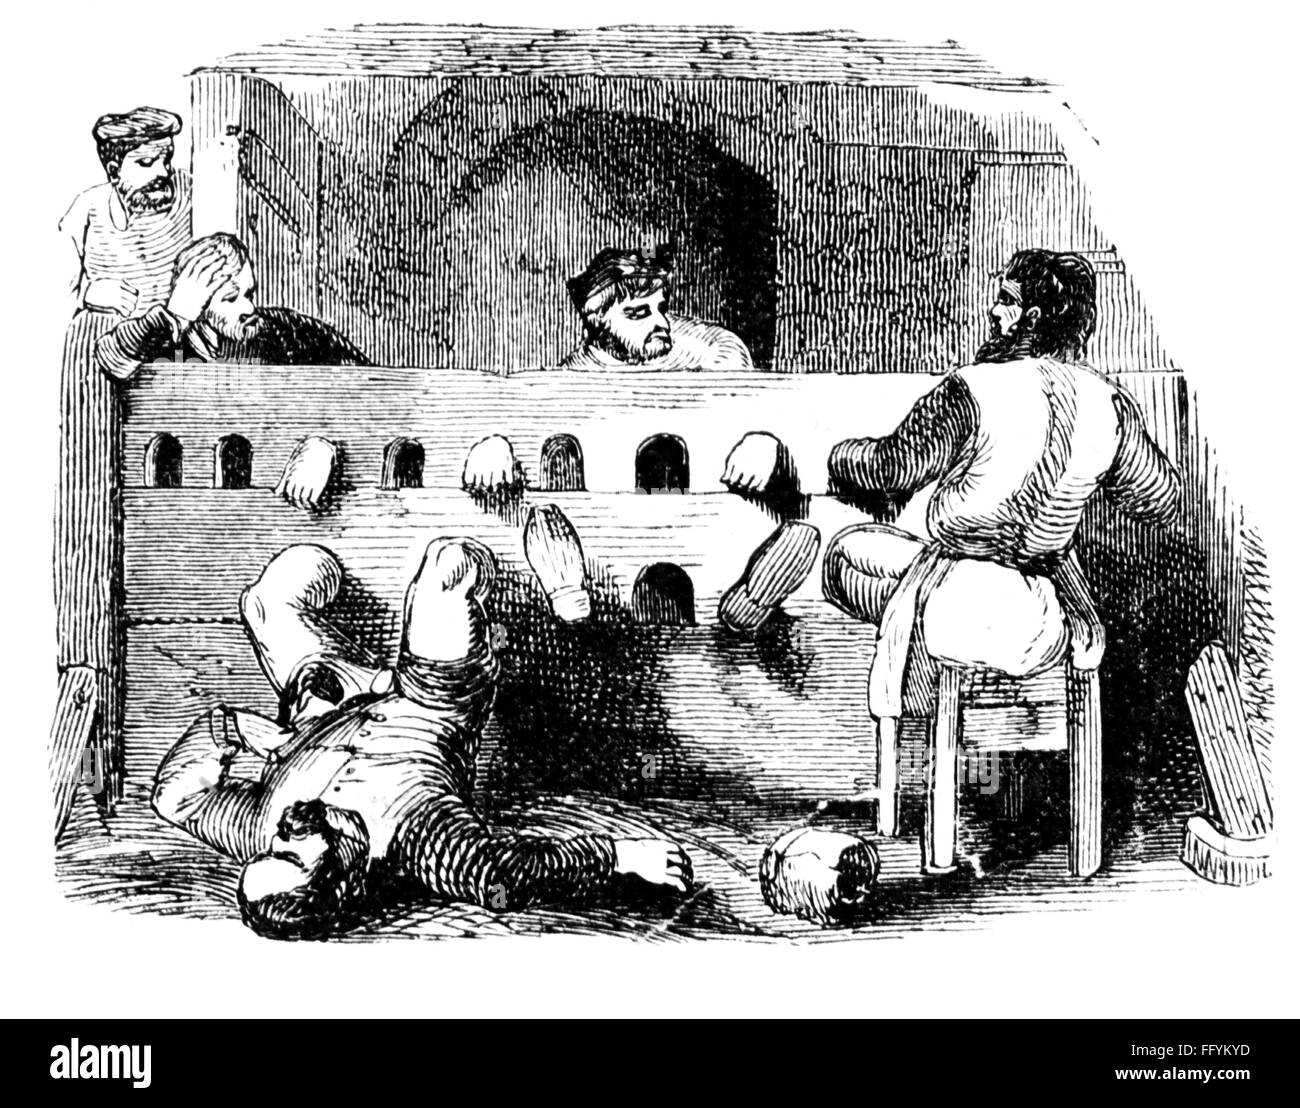 justice, torture, tightened Spanish boot, wood engraving, circa 1912, Additional-Rights-Clearences-NA - Stock Image